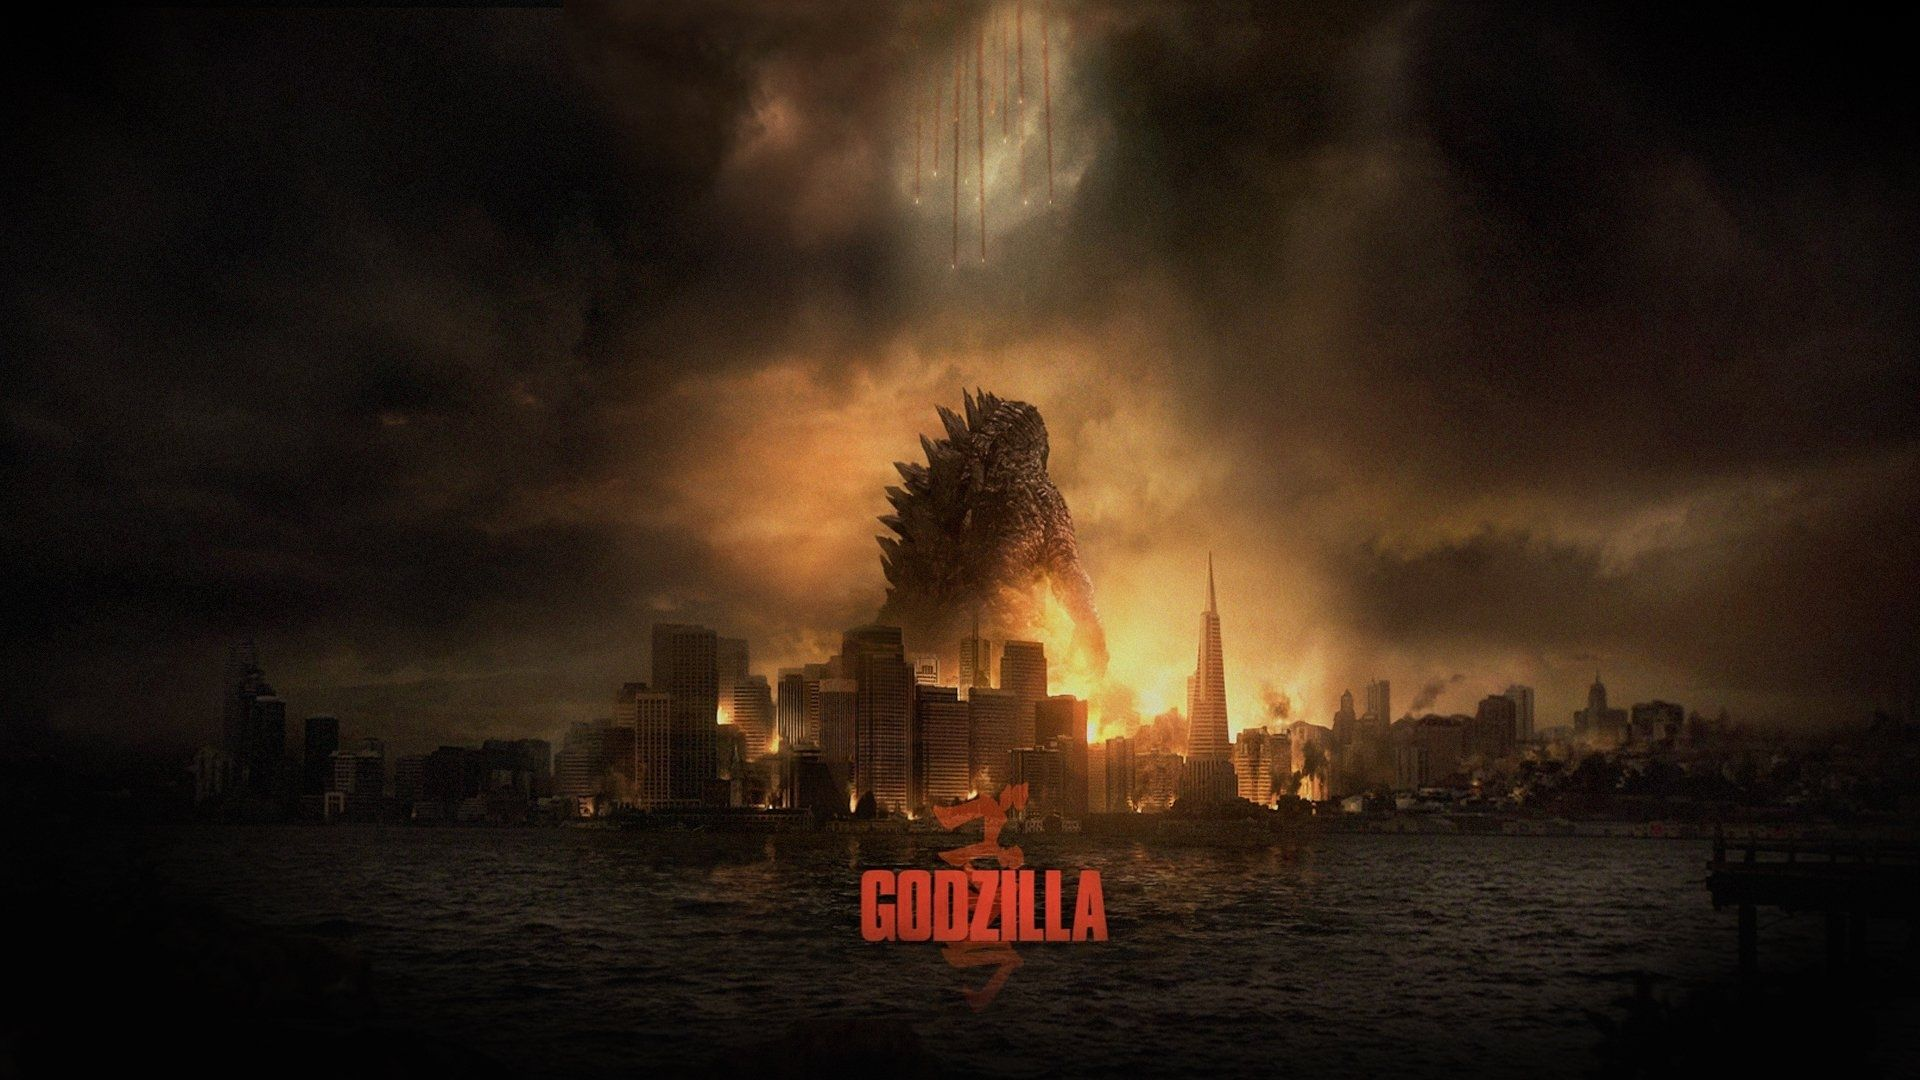 10 Best Godzilla 2014 Wallpaper Hd FULL HD 1920×1080 For